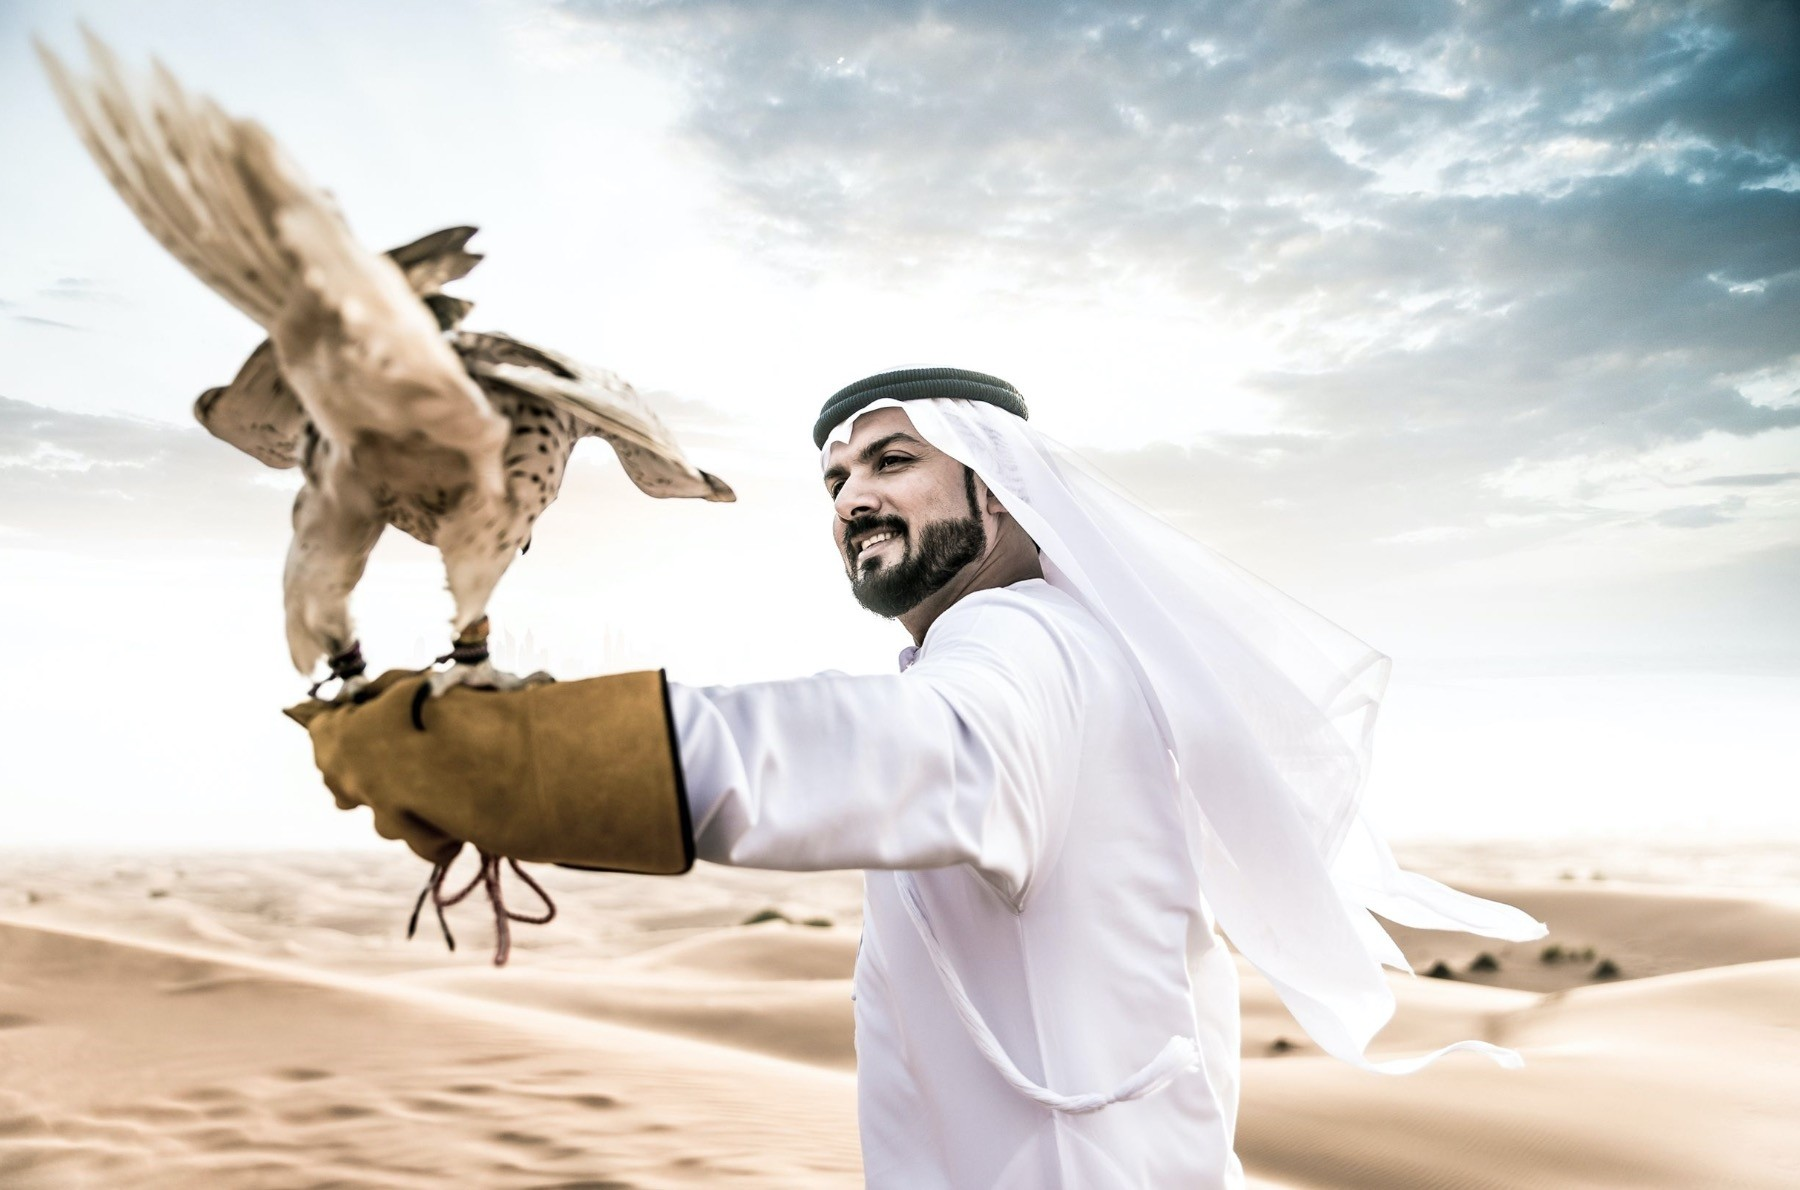 Predatory falcons, worth as much as TL 1 million are expected to put on a great show at the festival.